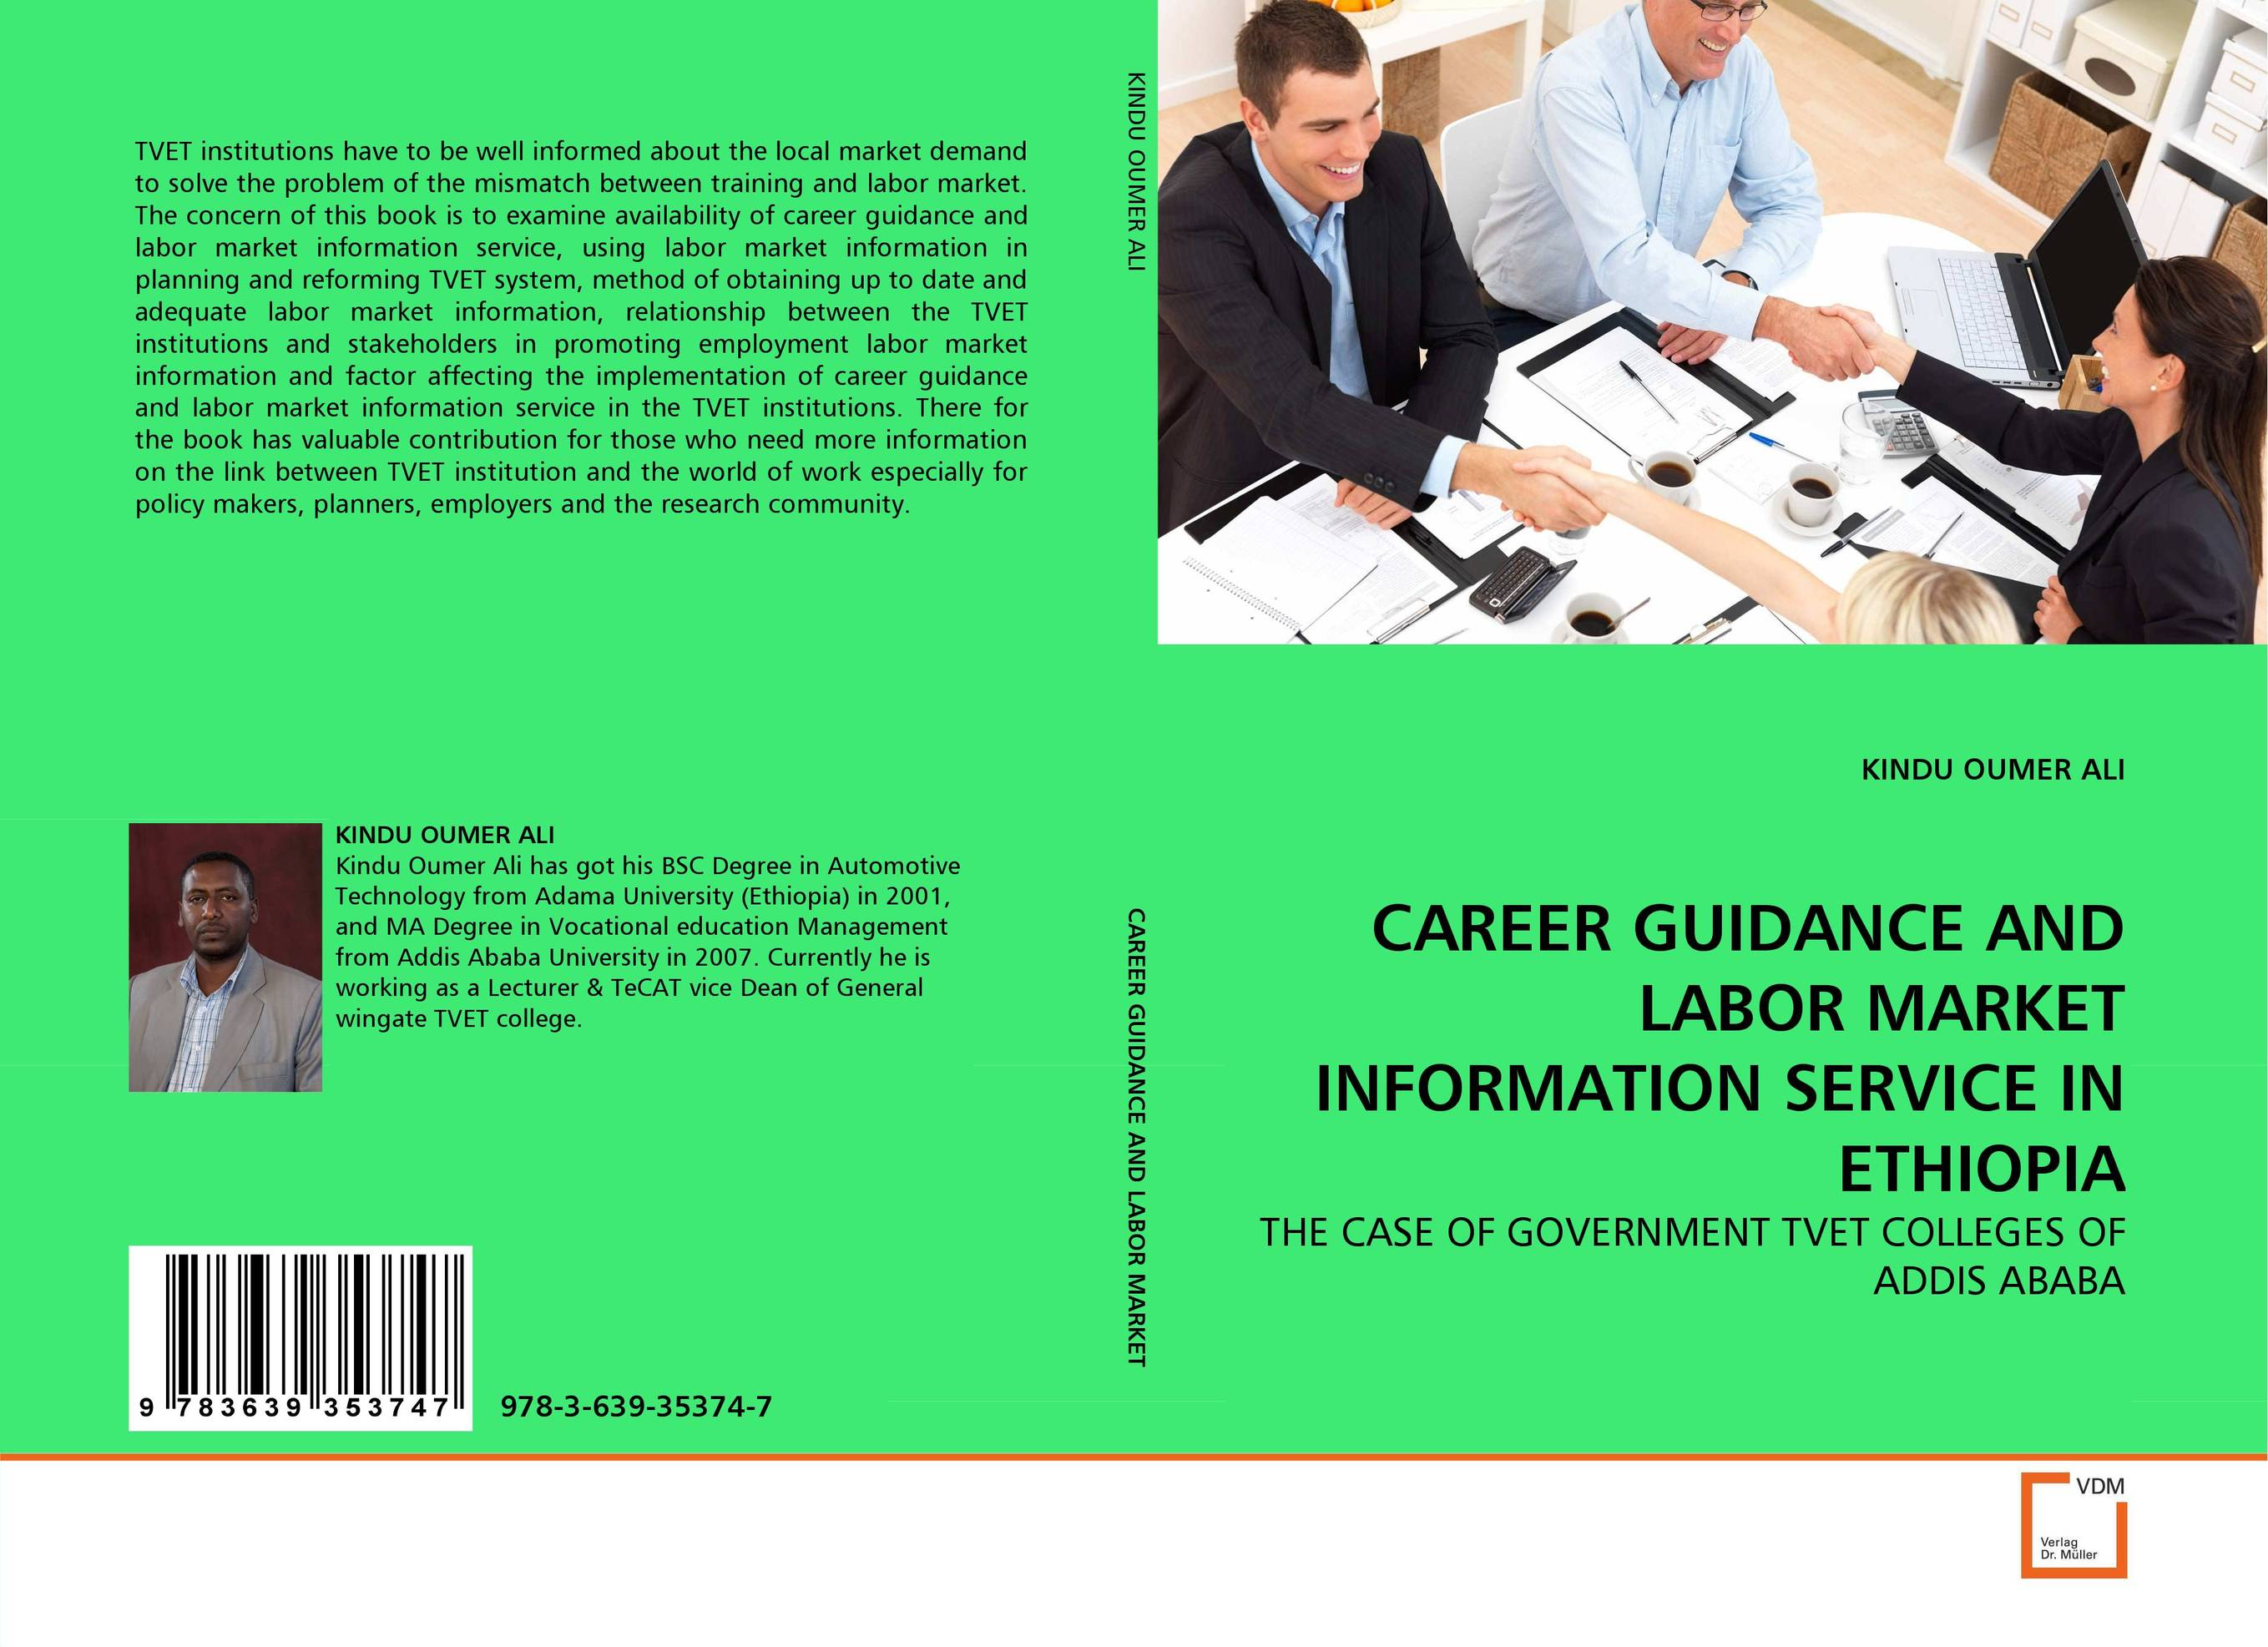 CAREER GUIDANCE AND LABOR MARKET INFORMATION SERVICE IN ETHIOPIA джинсы trespass джинсы классические